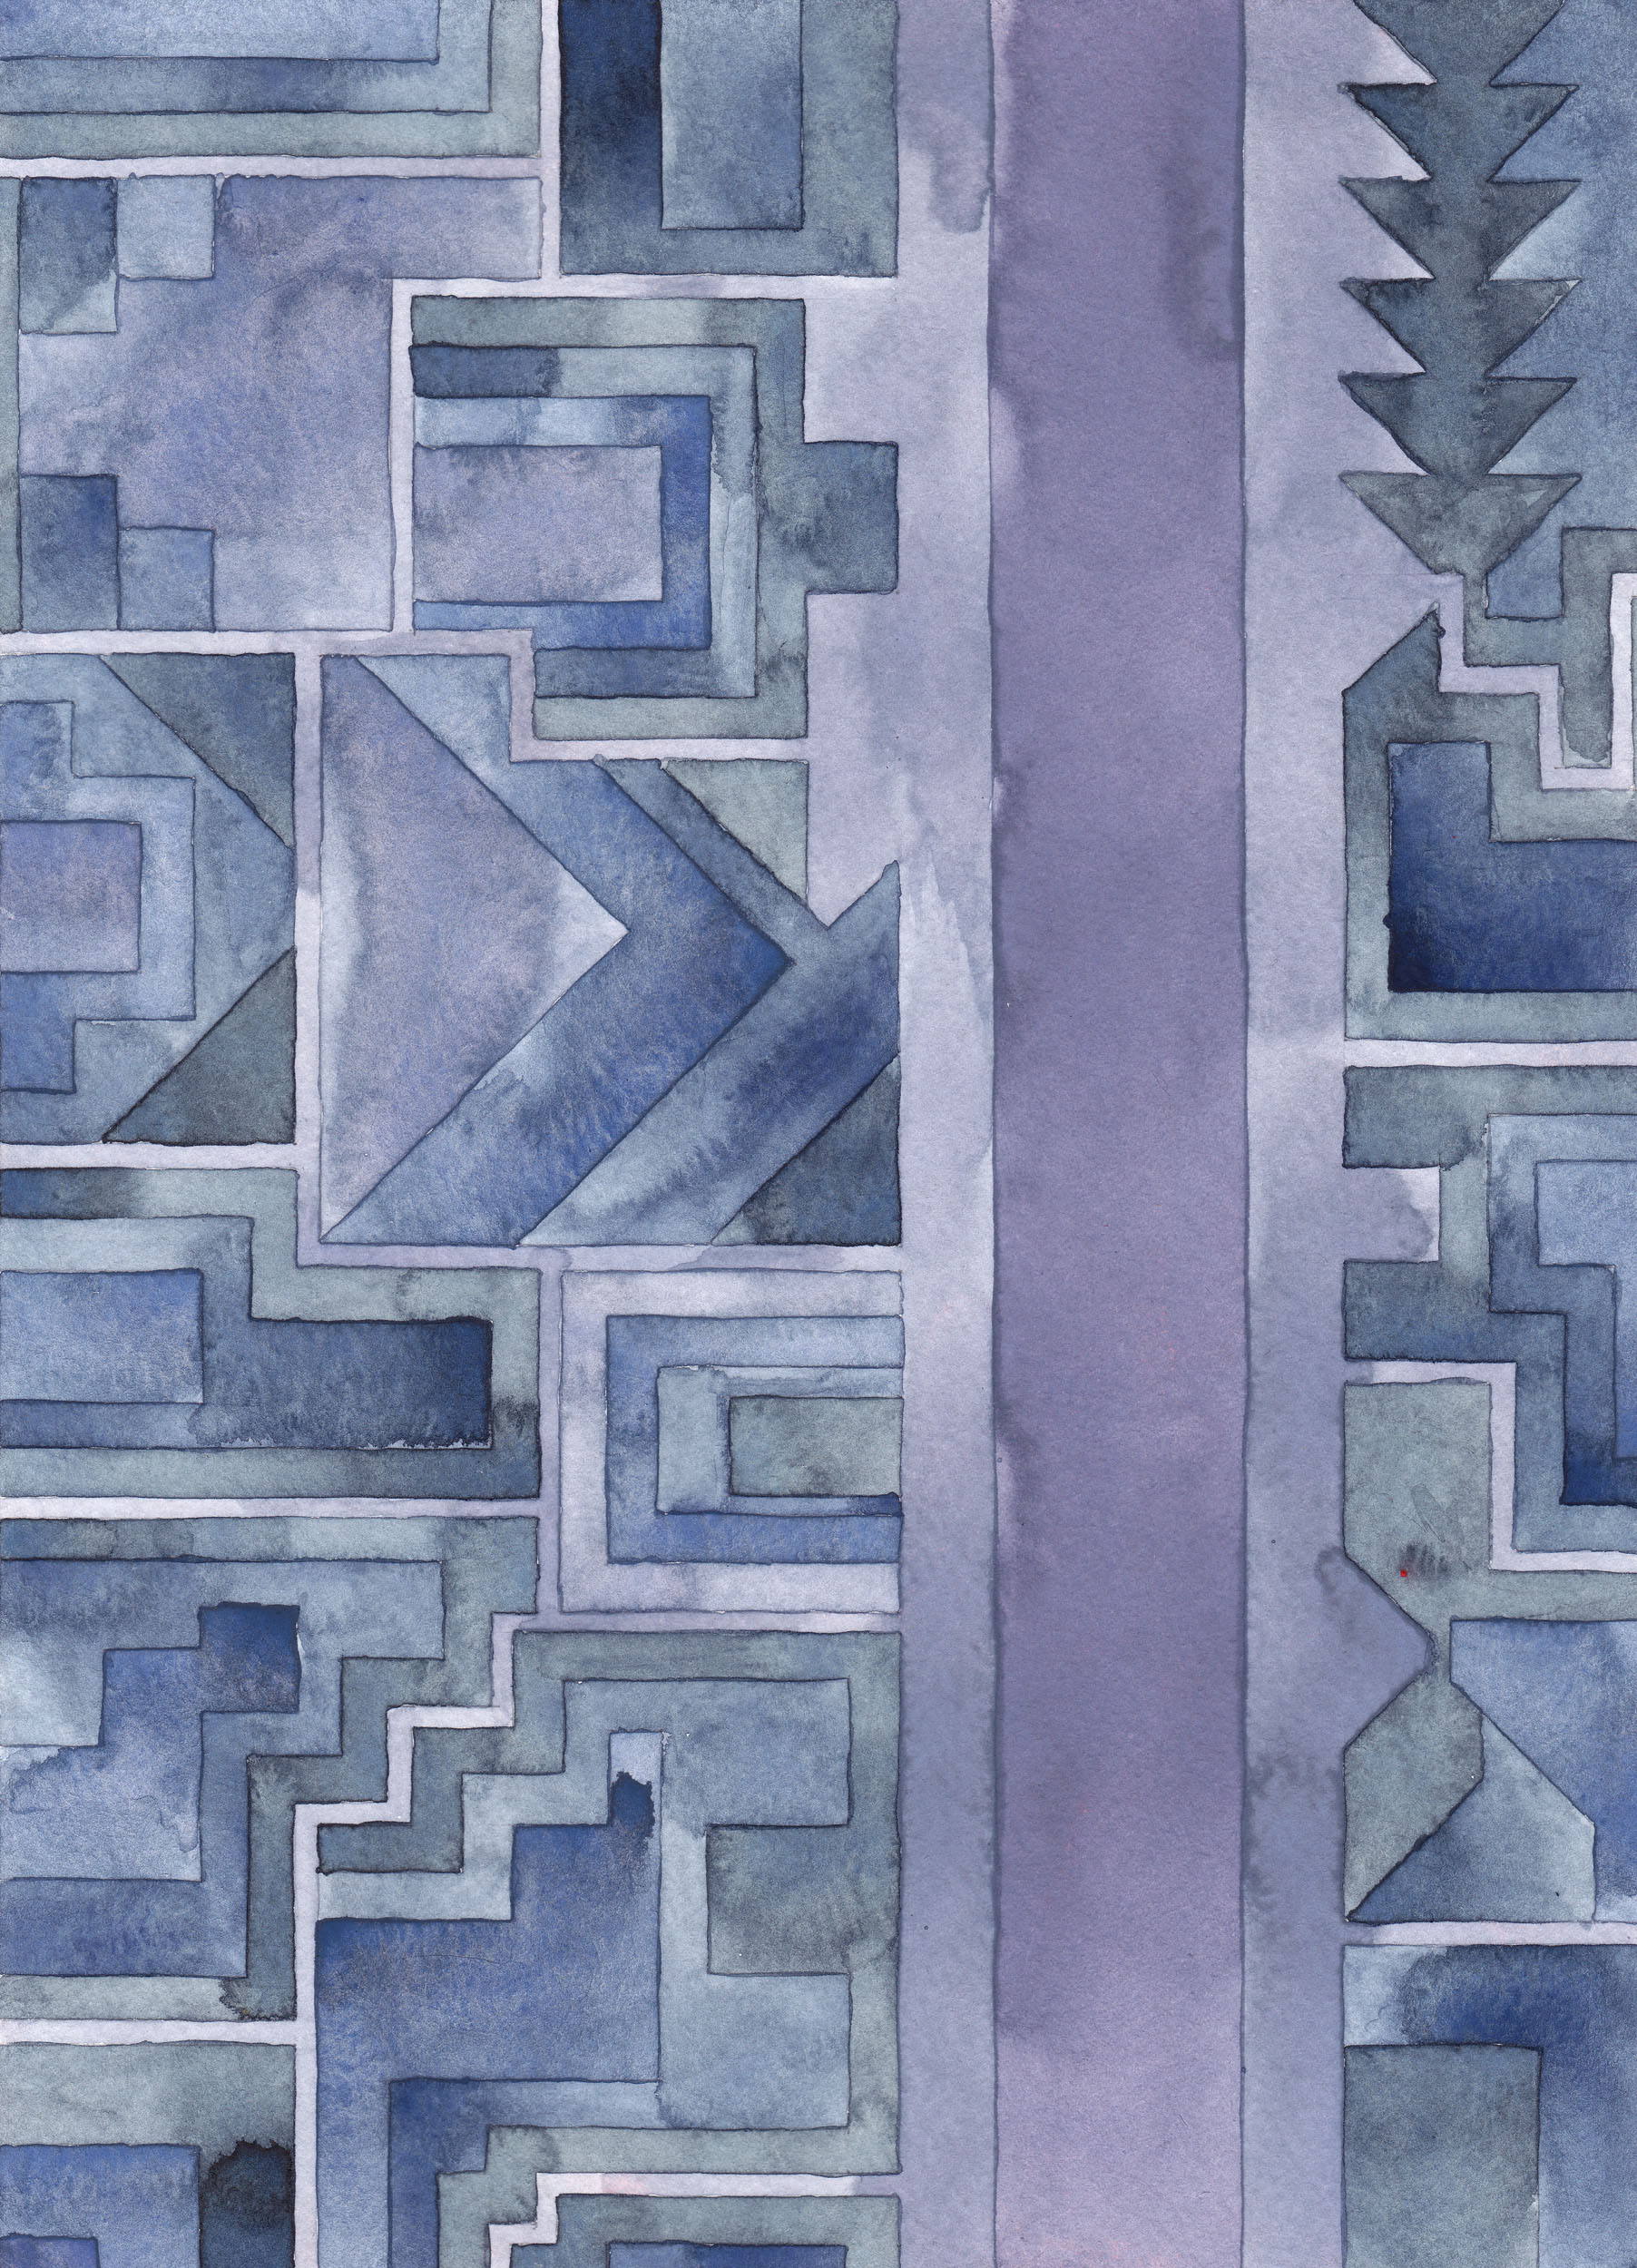 Cityscape 13 , 2014  watercolor on watercolor paper  11.75 x 8.5 inches